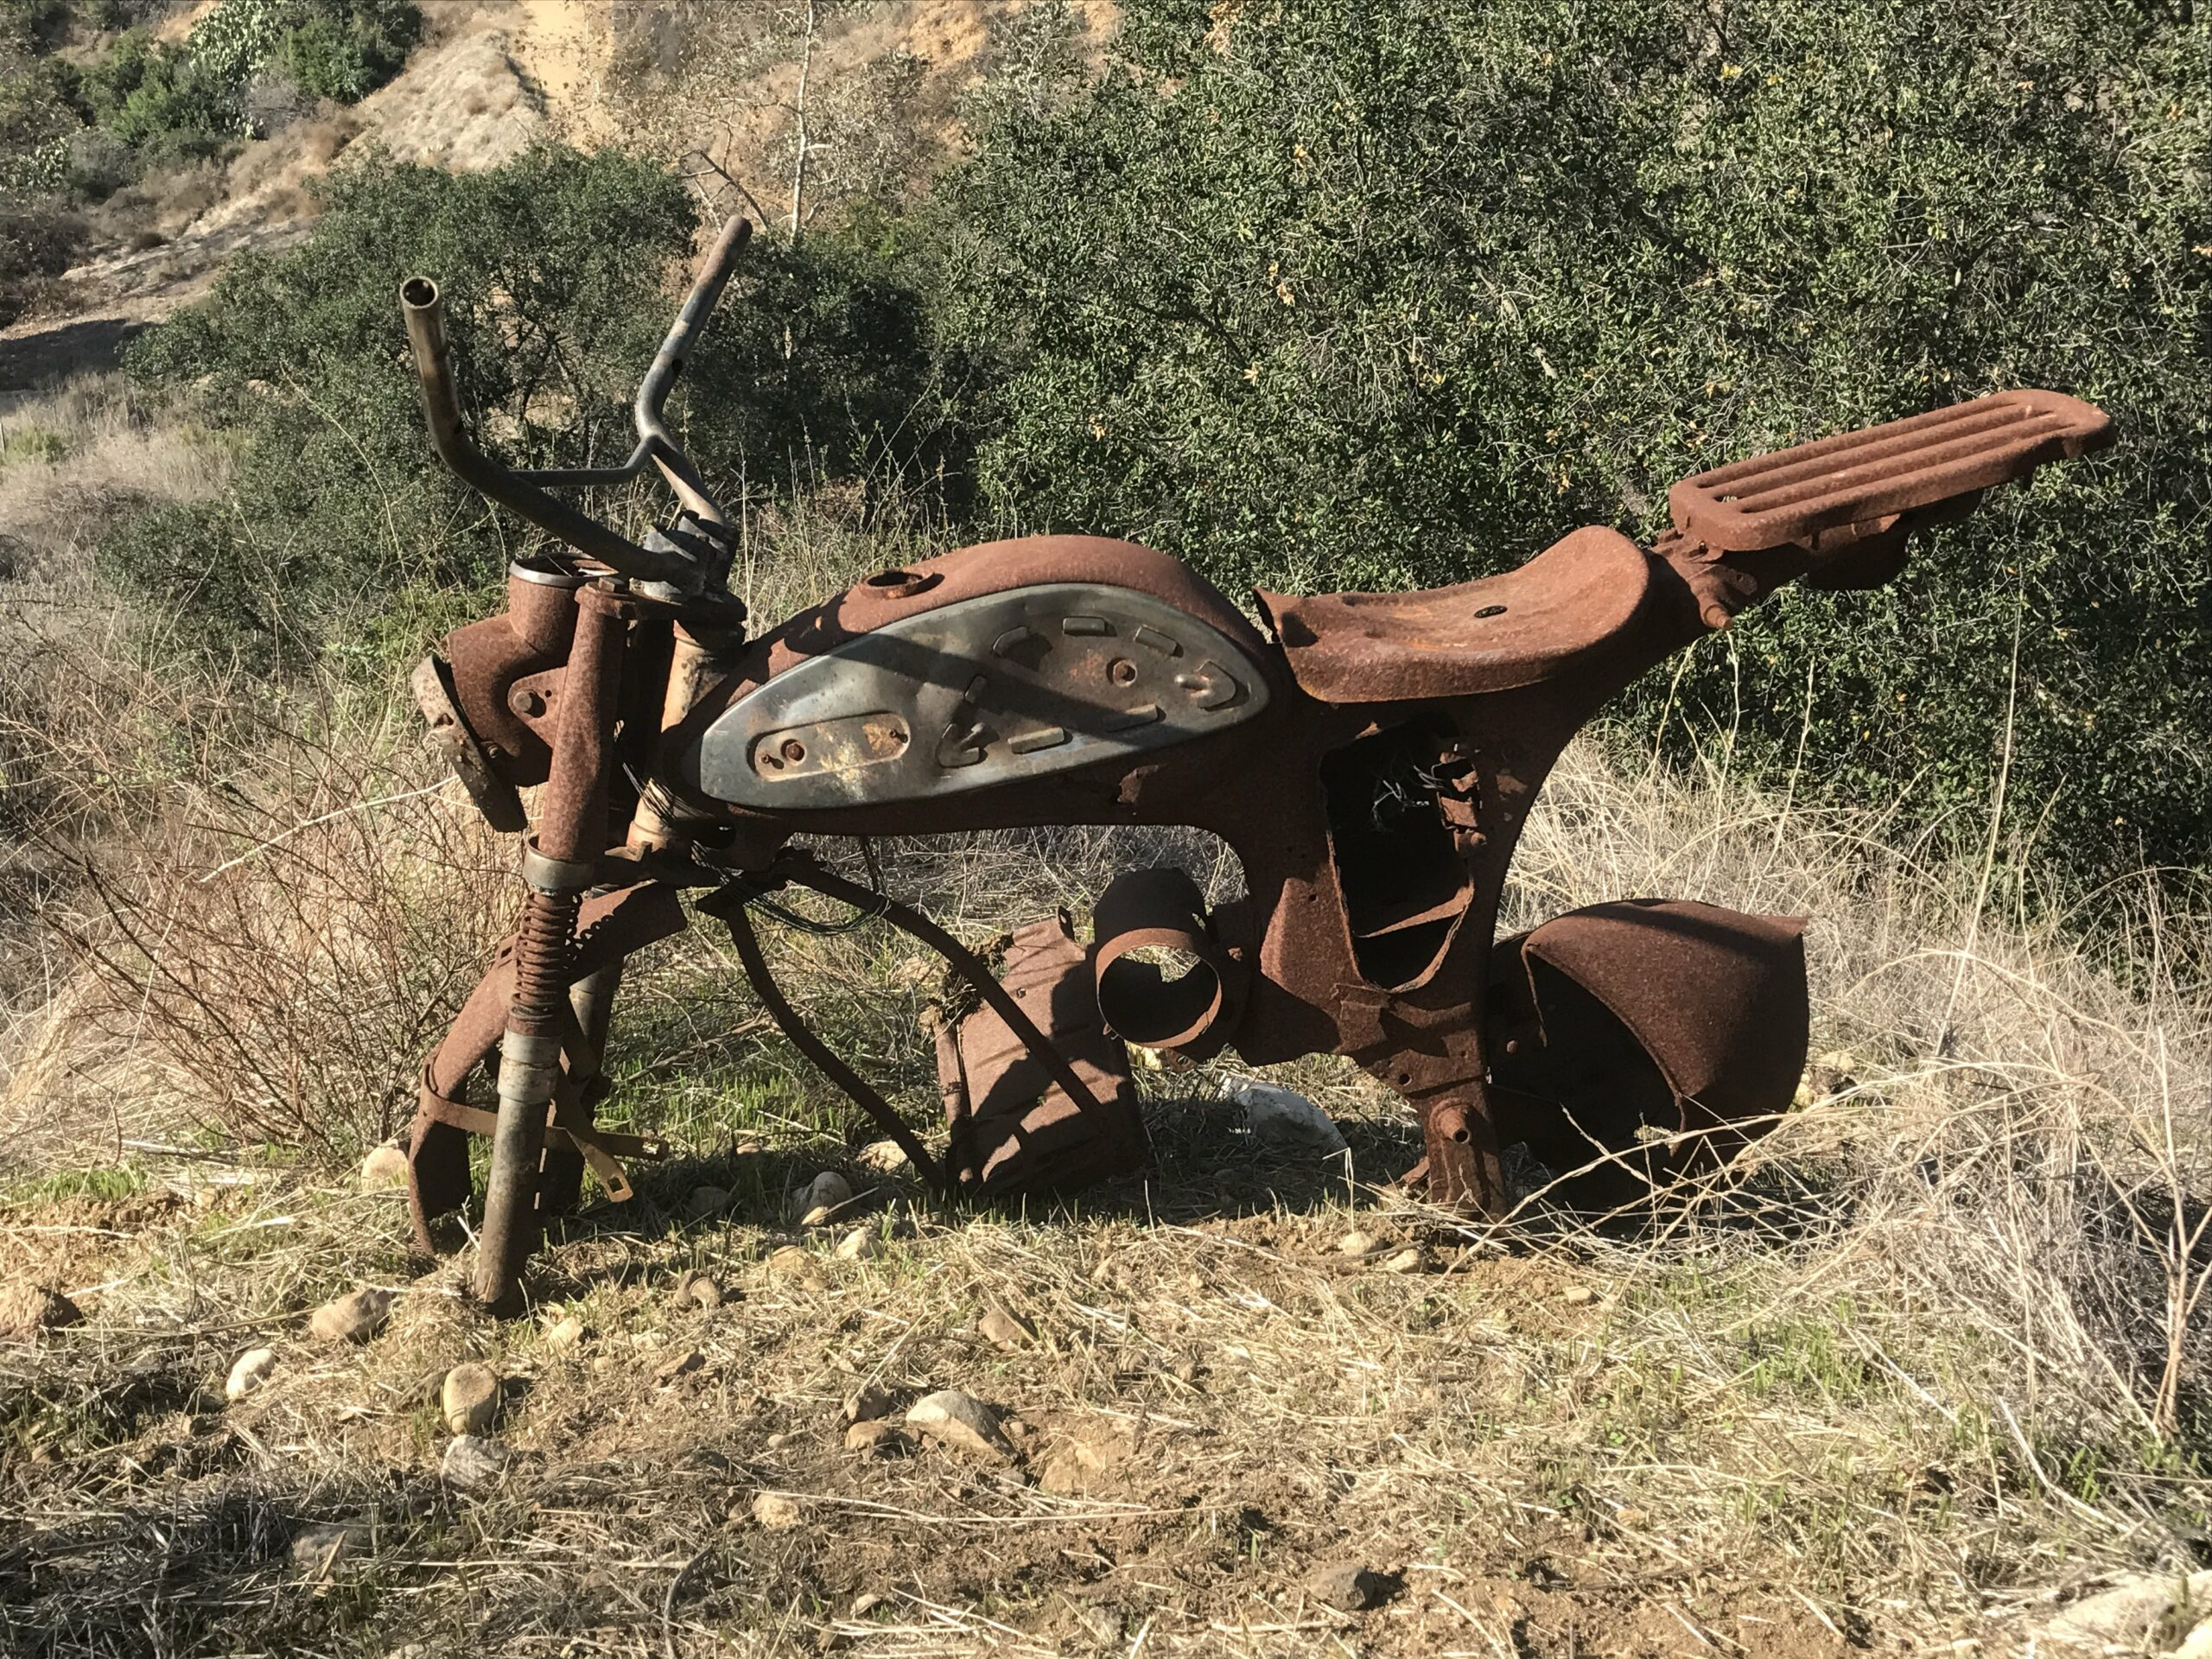 Turnbull Canyon rusted motorcycle